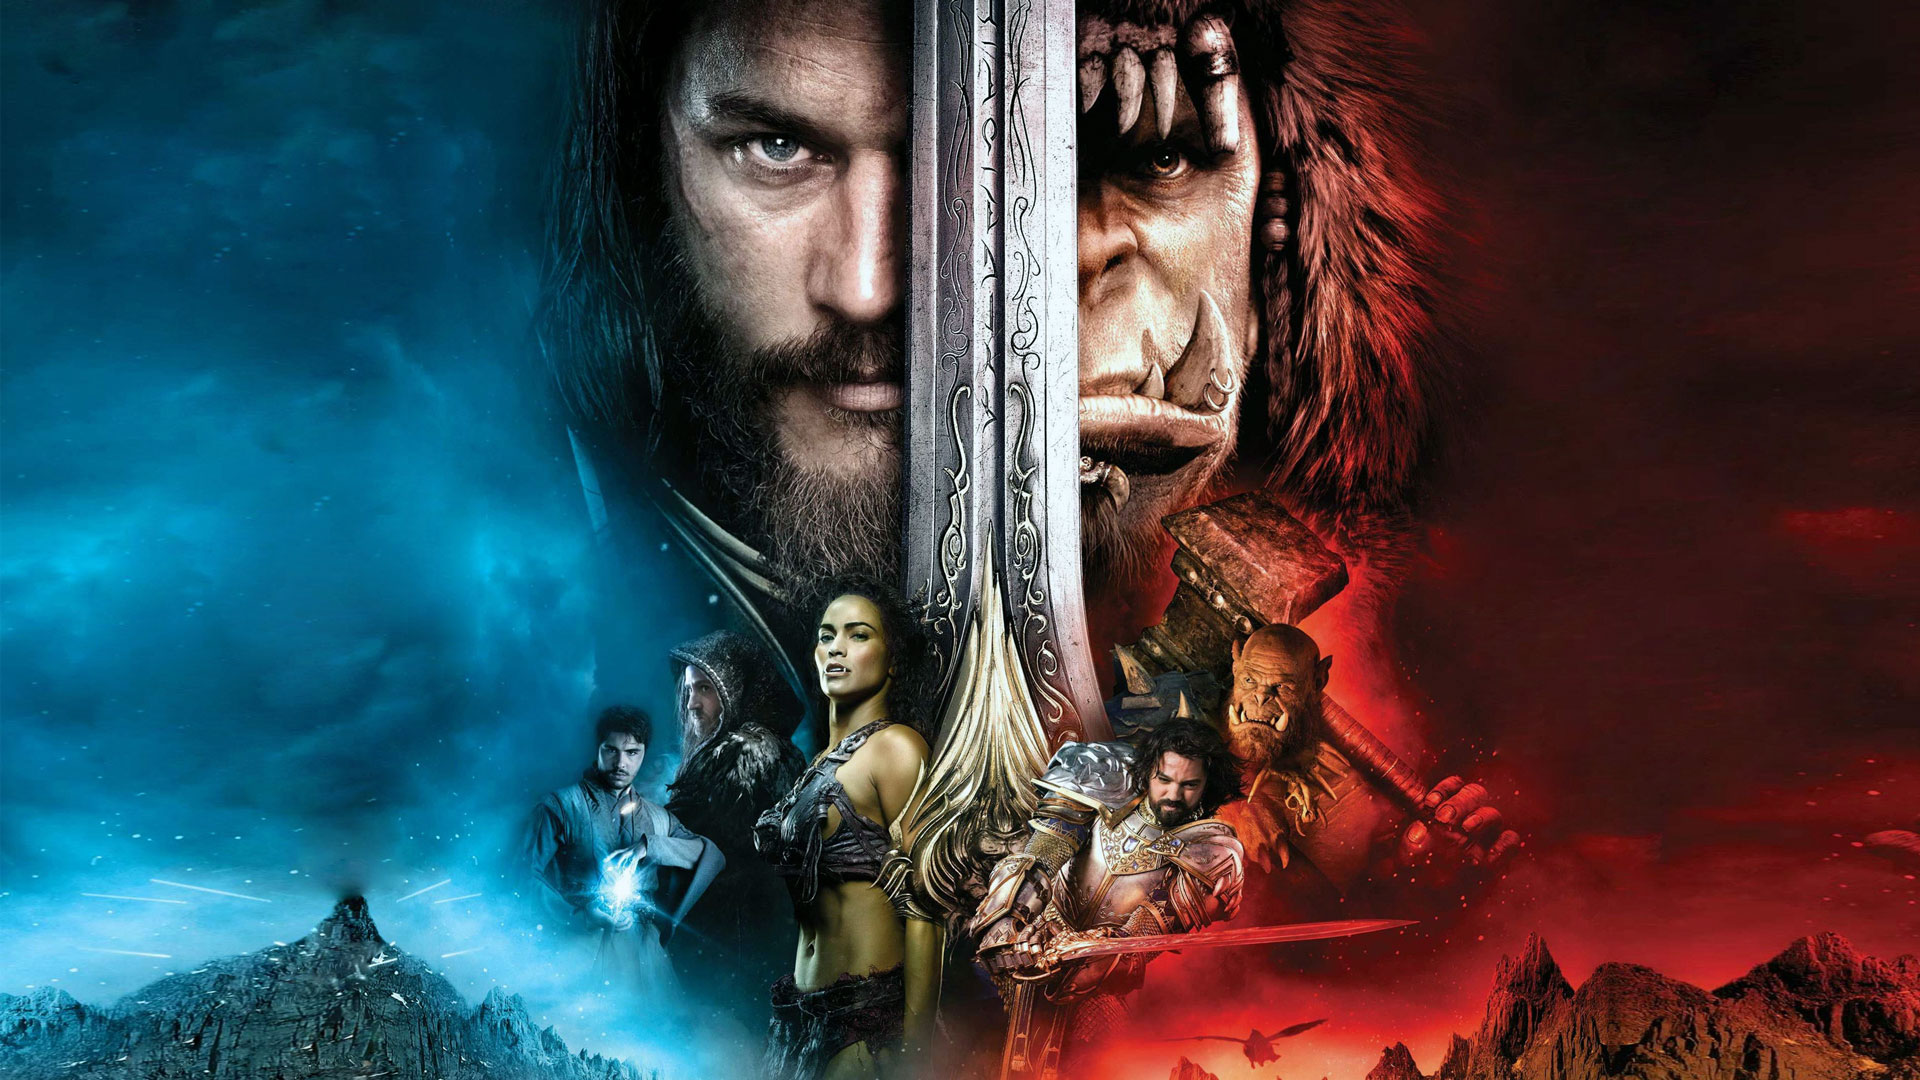 Warcraft Movie Hd Hd Movies 4k Wallpapers Images Backgrounds